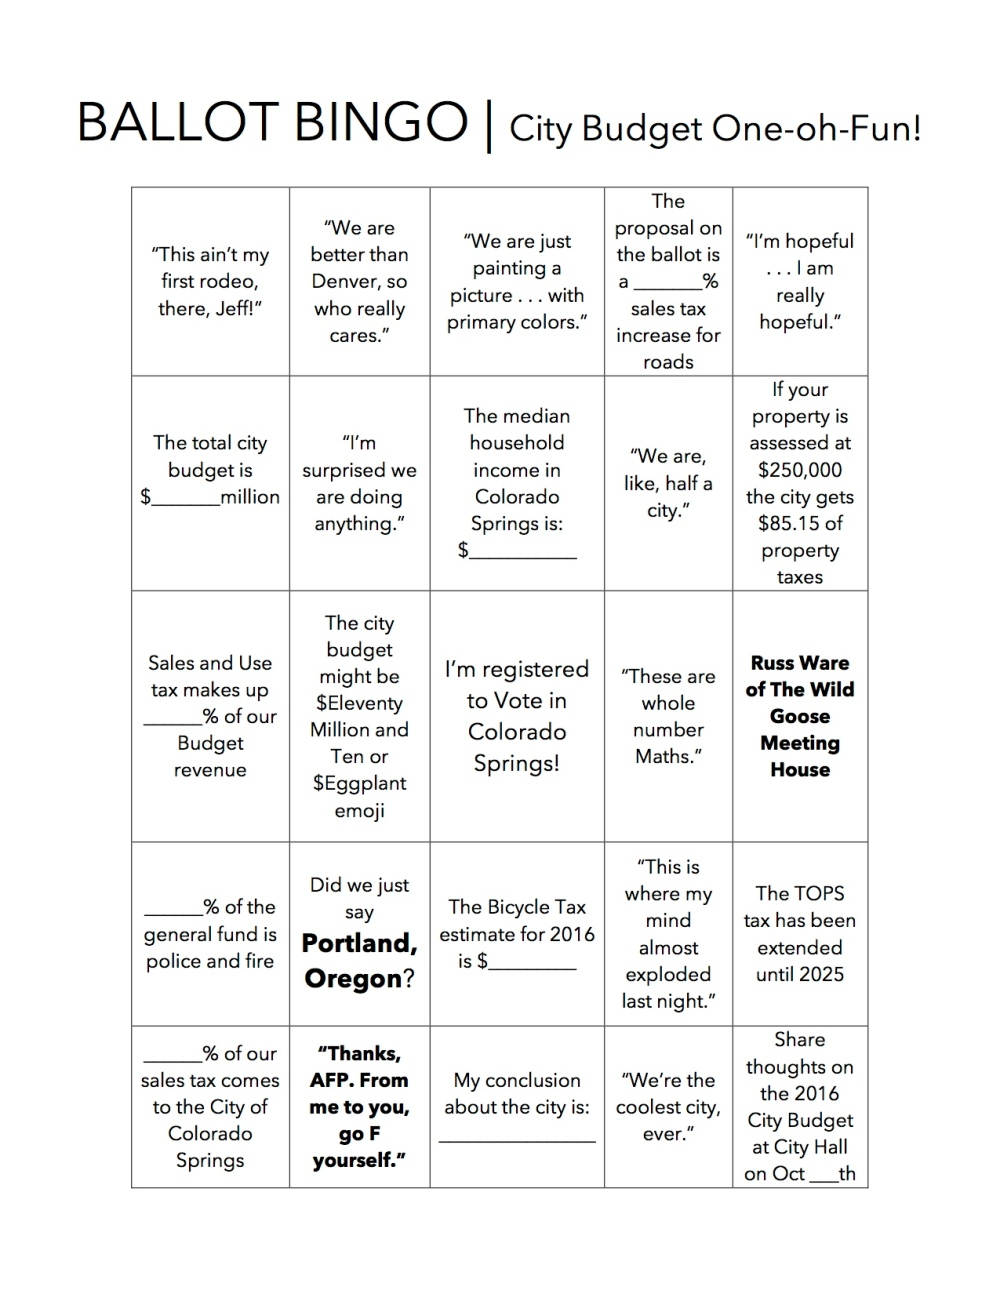 BALLOT BINGO Week One _ City Budget One oh Fun